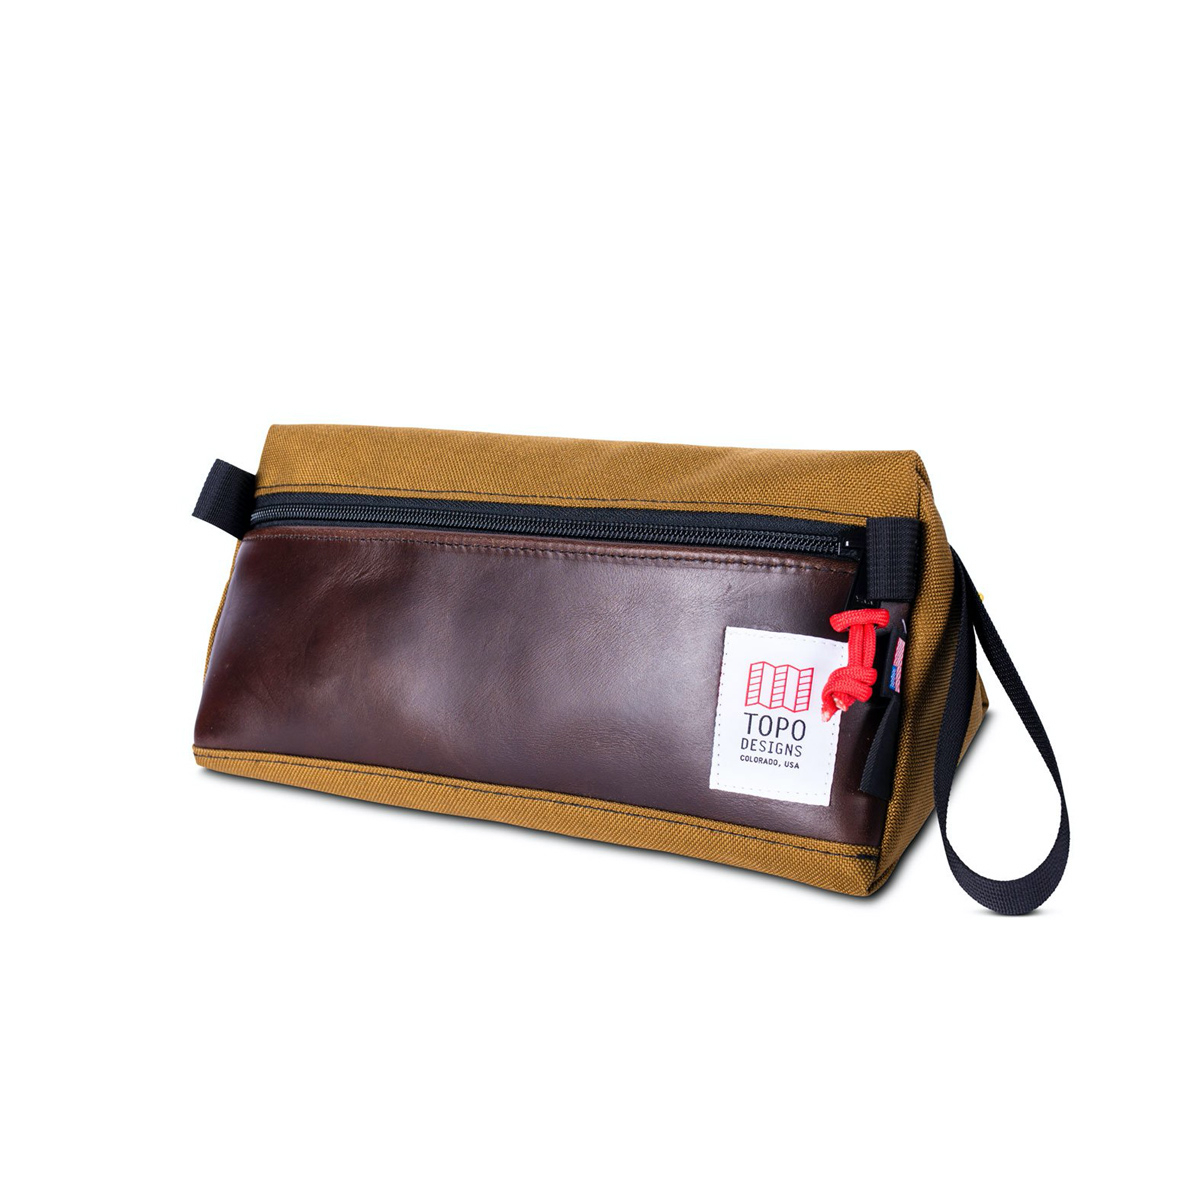 Topo Designs Dopp Kit Heritage Duck/Brown Leather